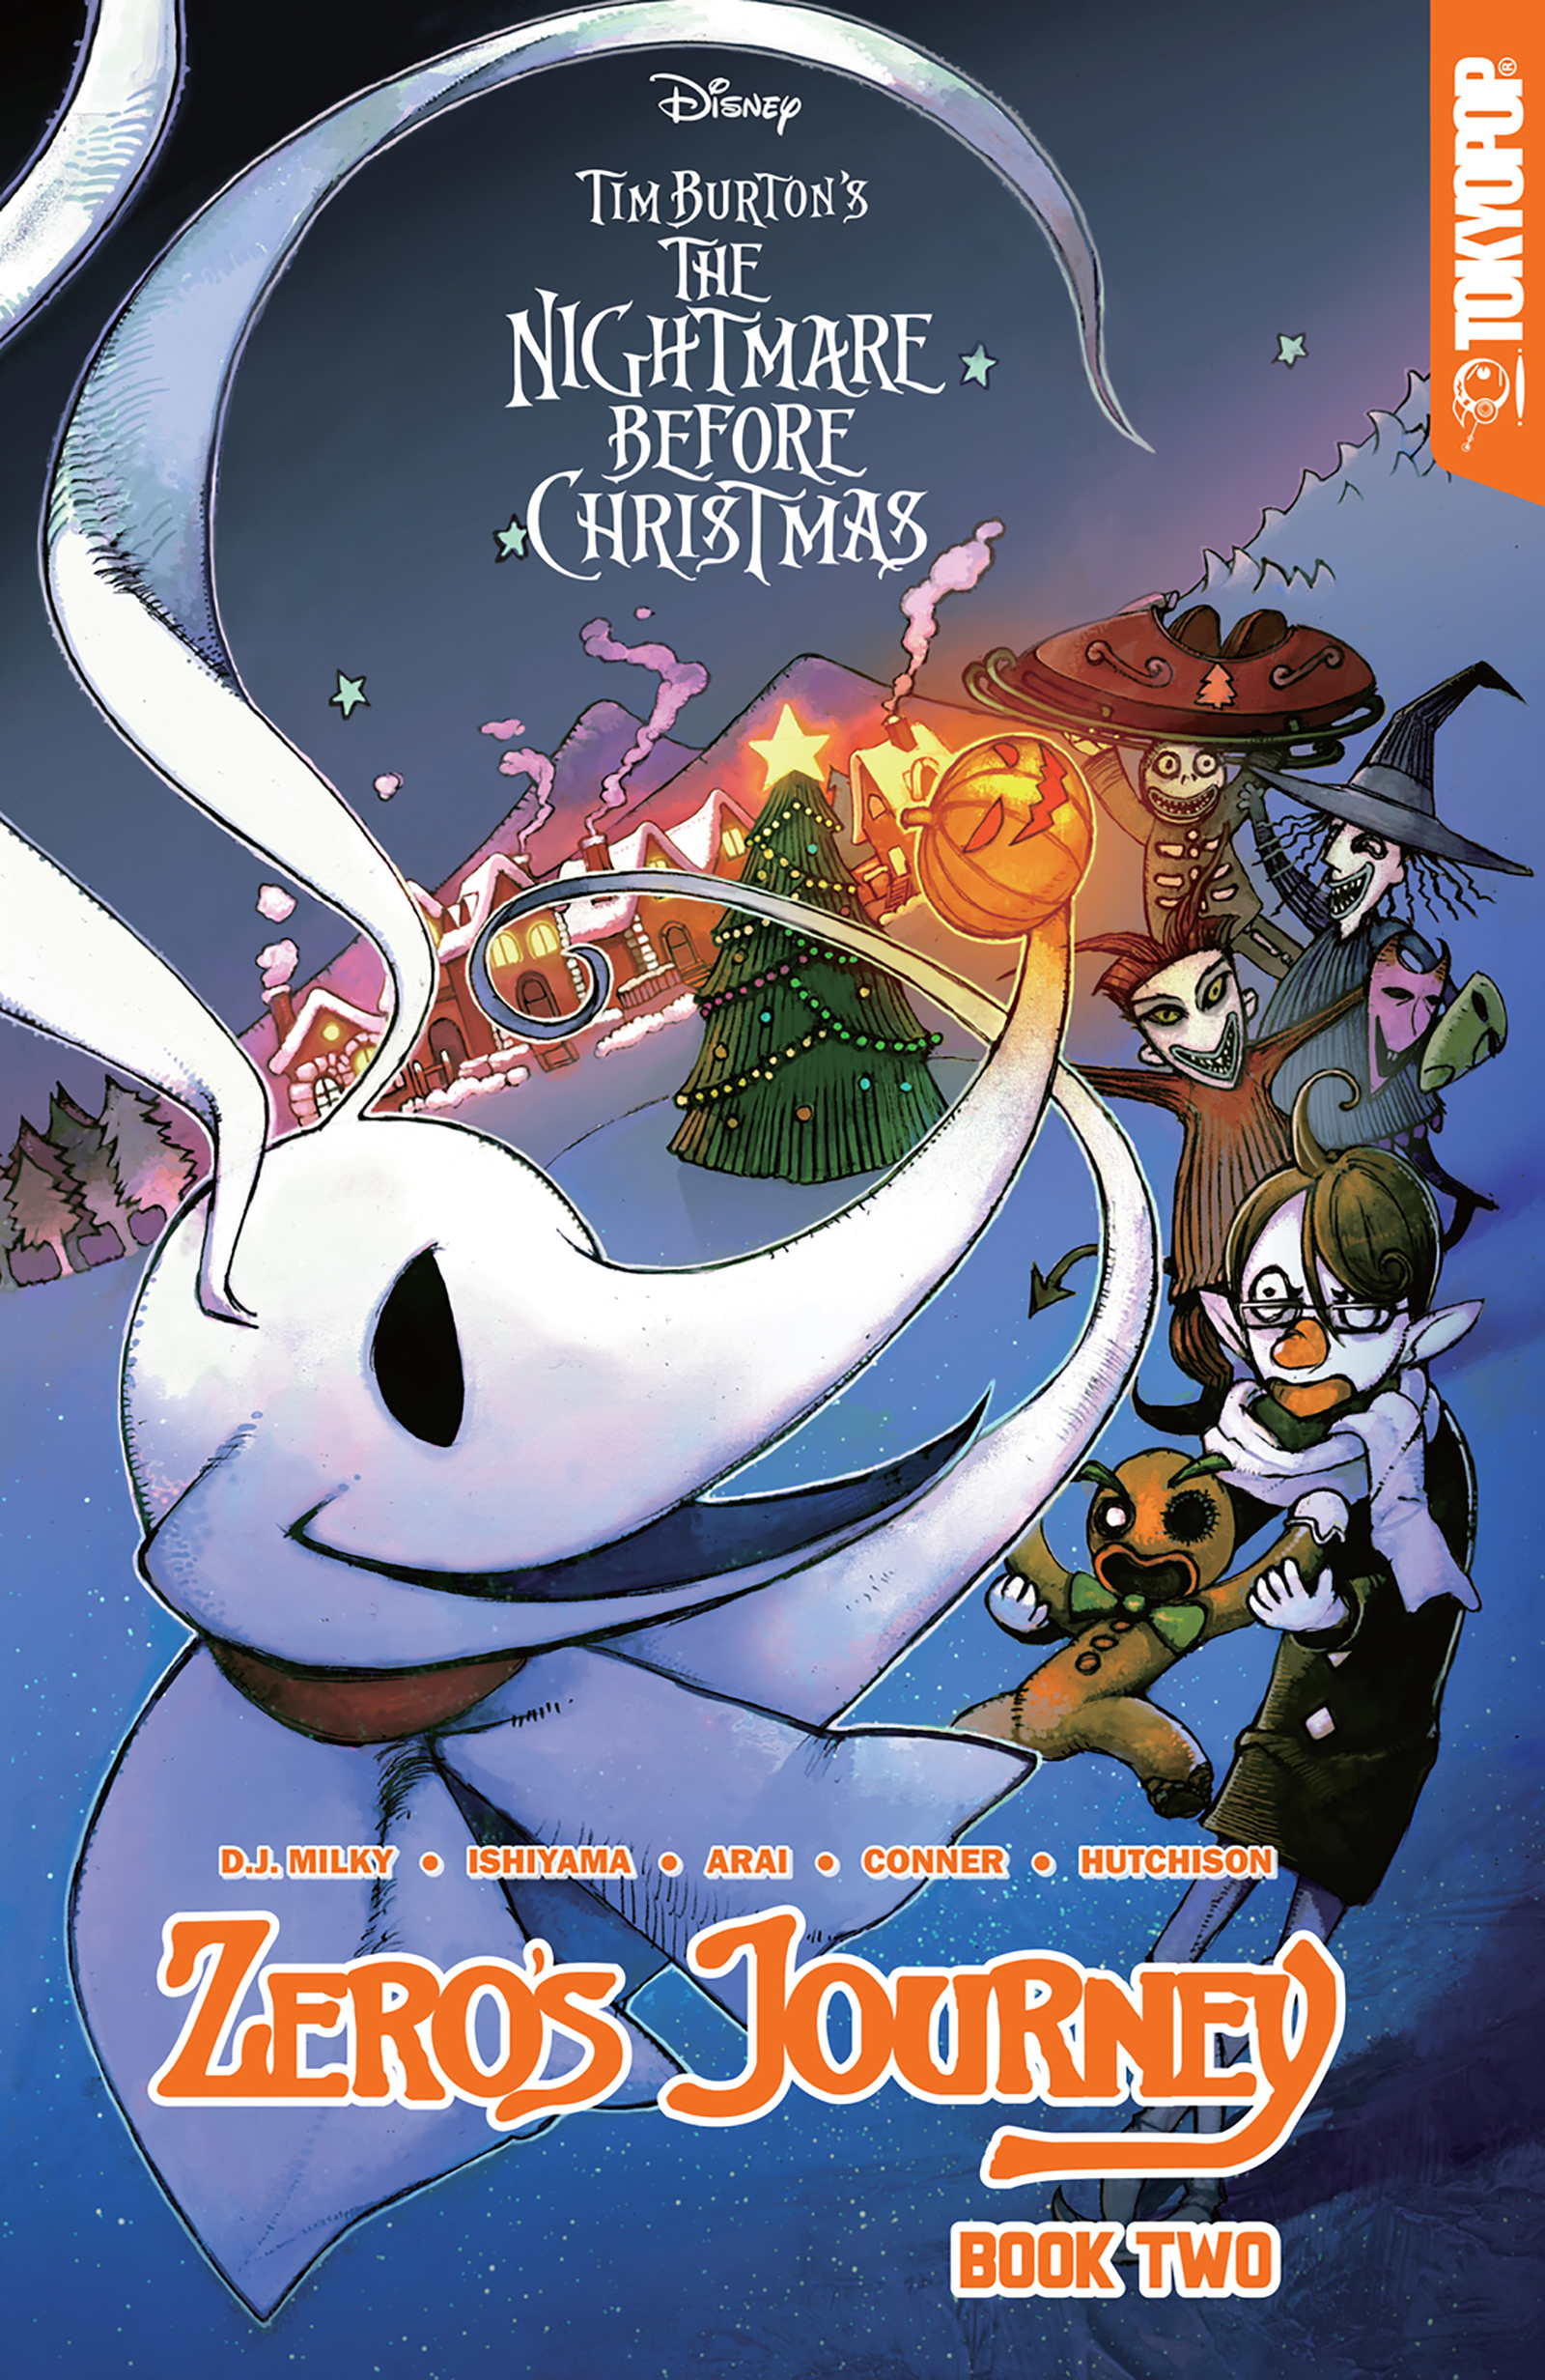 Disney Manga: Tim Burton's The Nightmare Before Christmas -- Zero's Journey Graphic Novel Book 2